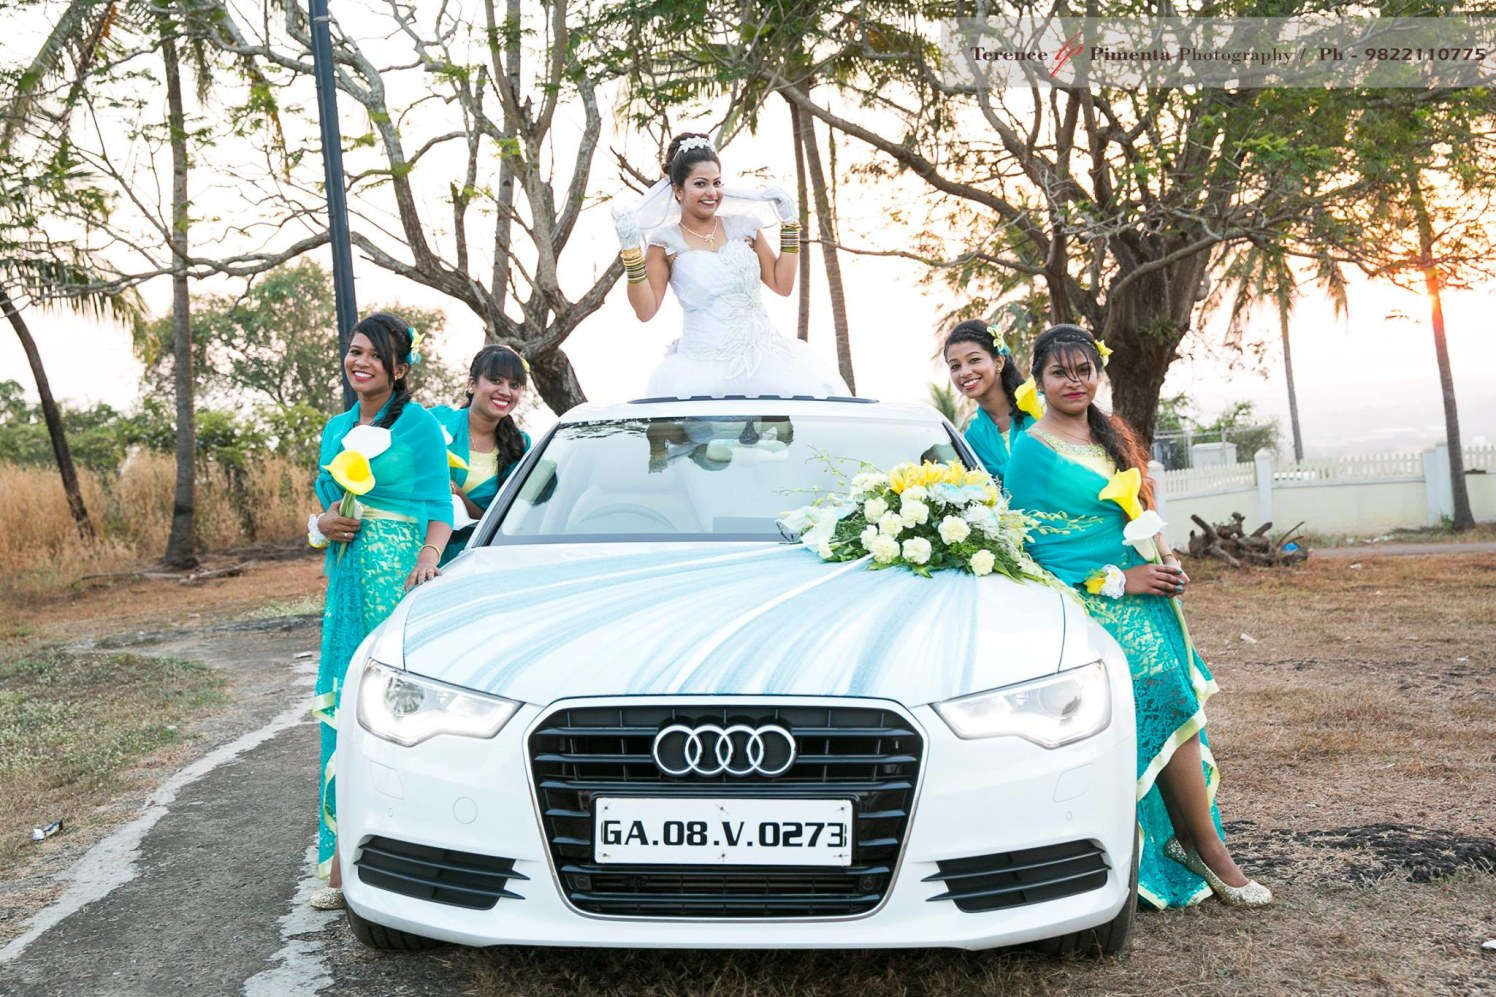 Grandly Amazing Bridal Shoot With Bridesmaids by Terence Savio Pimenta Wedding-photography | Weddings Photos & Ideas